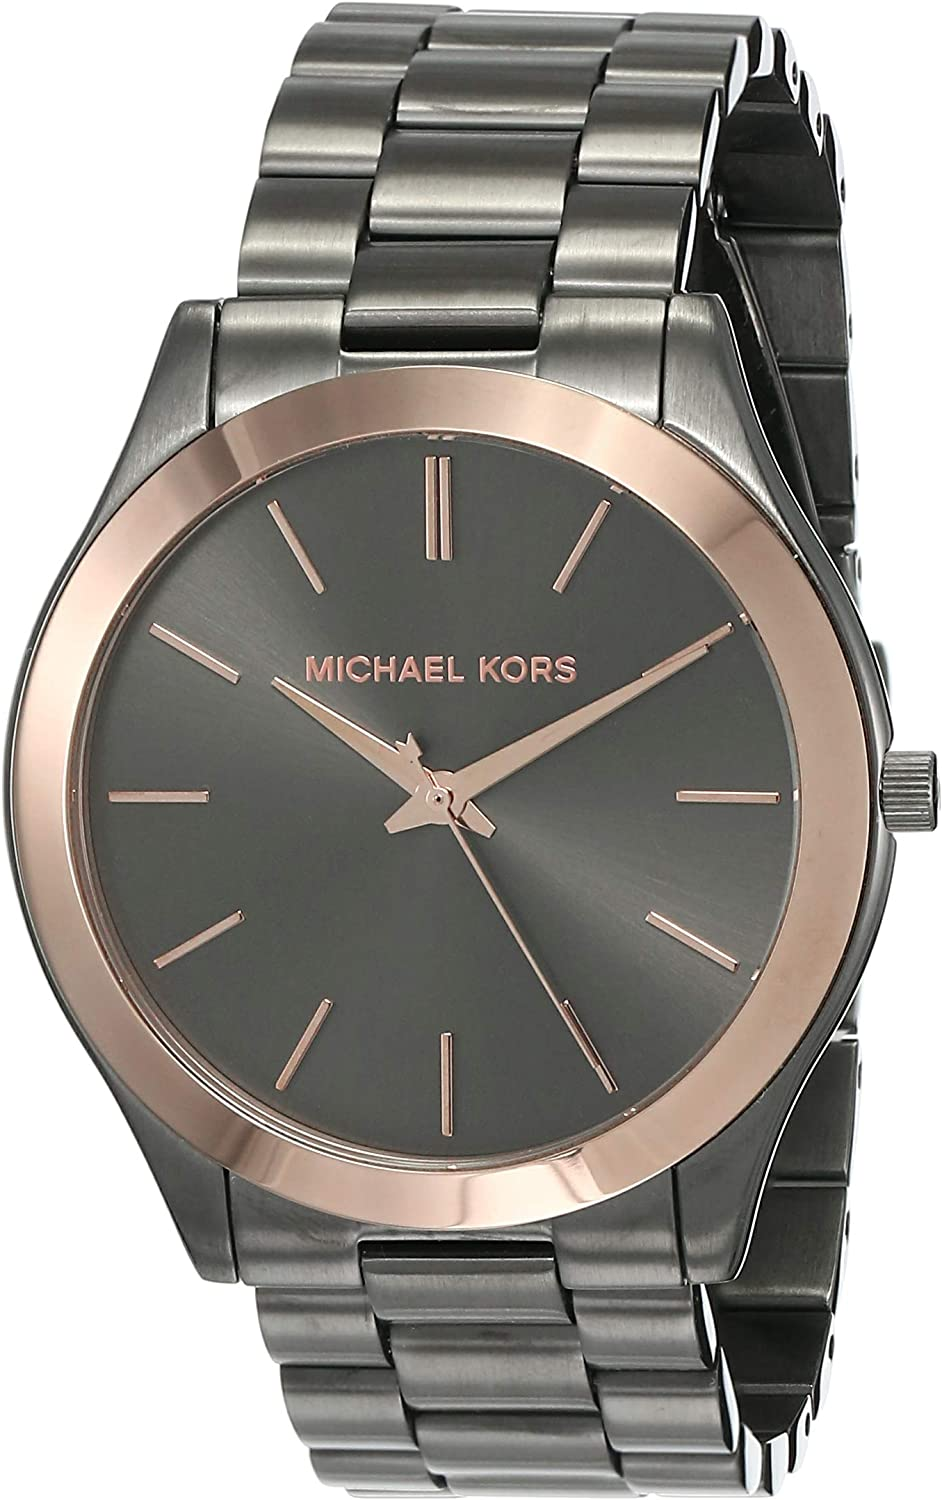 Michael Kors Slim Runway Men's Dress Wrist Watch